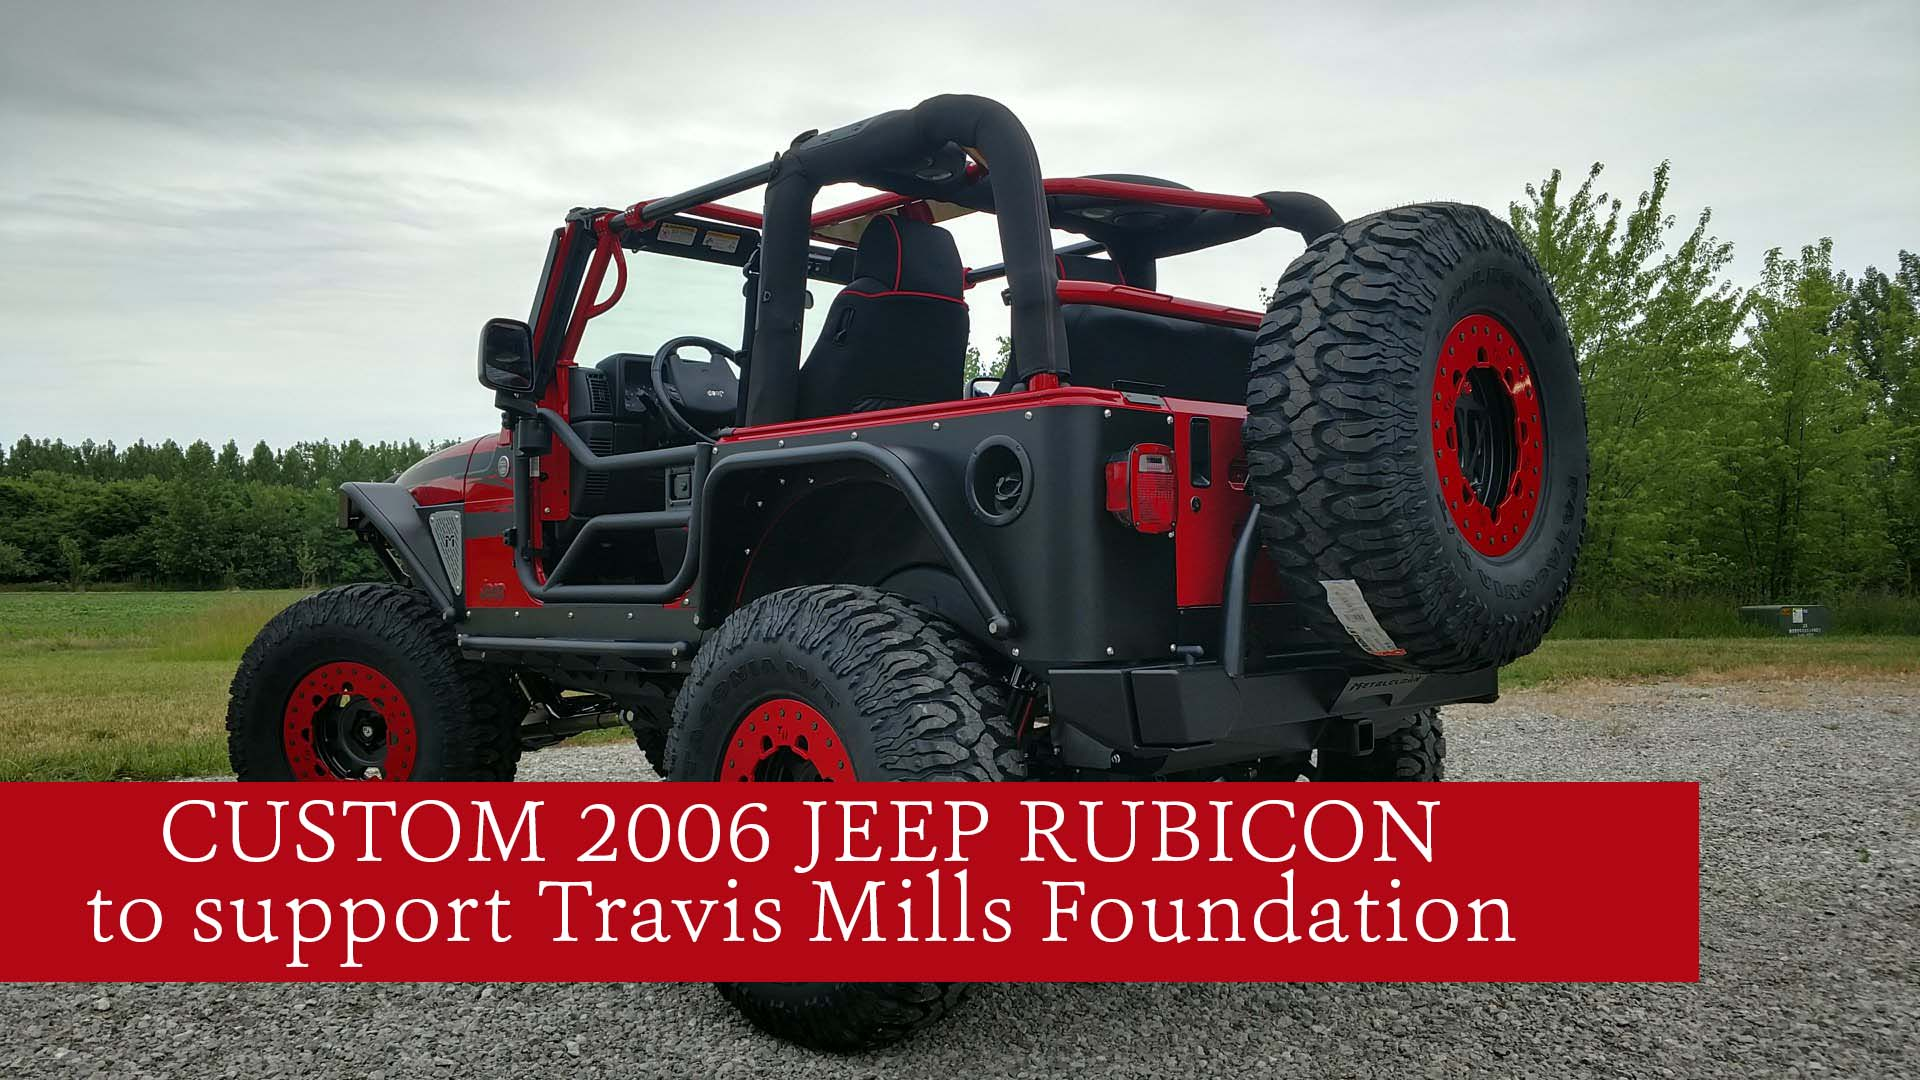 Travis Mills Foundation Jeep Rubicon Fest Ssg Wrangler Parts Book The Is Outfitted With Great Accessories And All Are Brand New